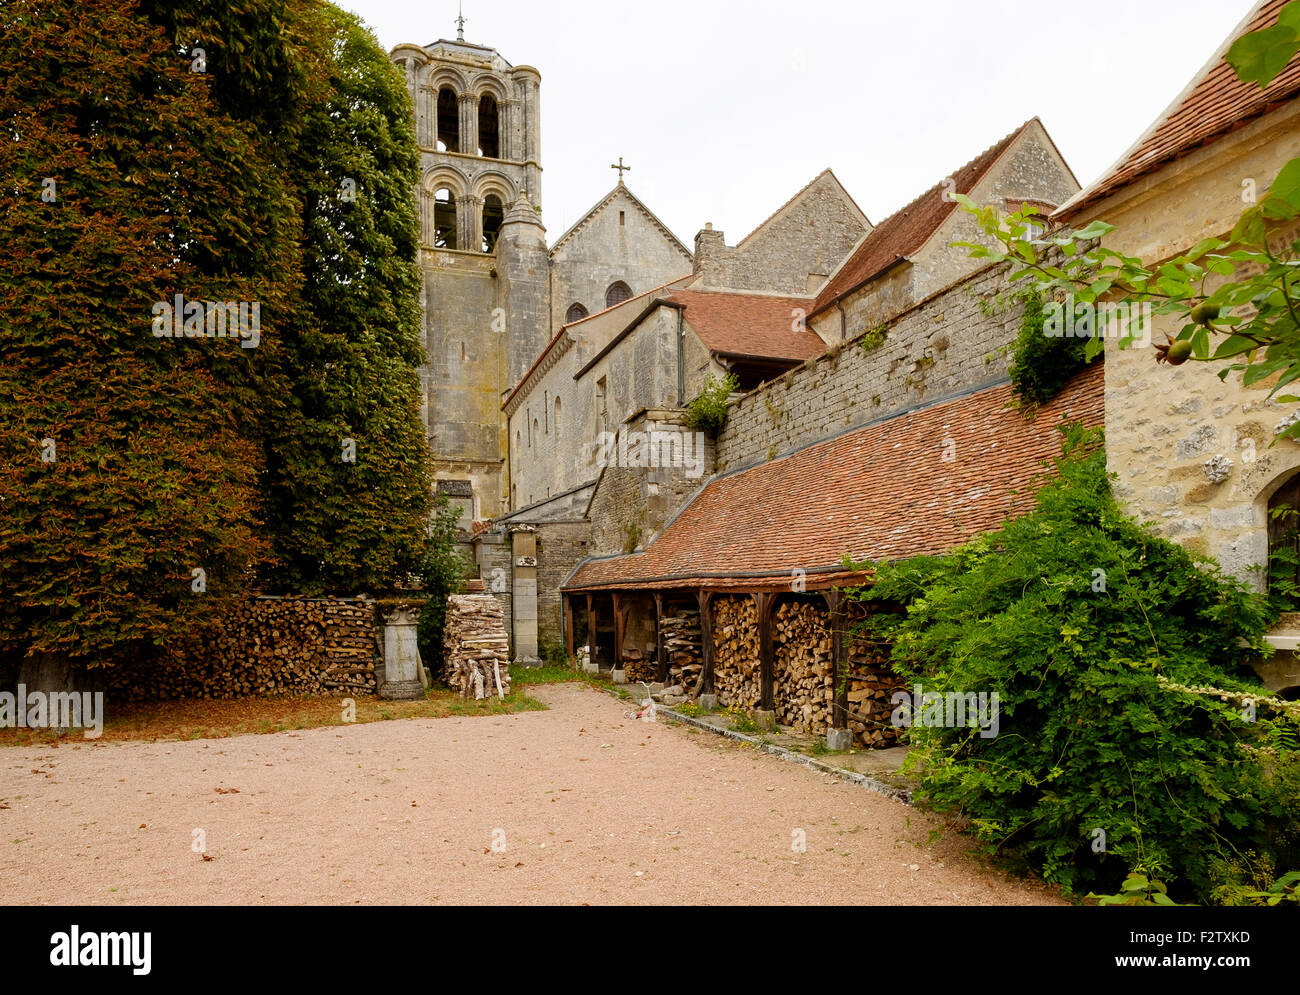 Outbuildings in the Abbey of Vezelay. A belltower of Basilique Sainte-Madeleine is in the background. - Stock Image